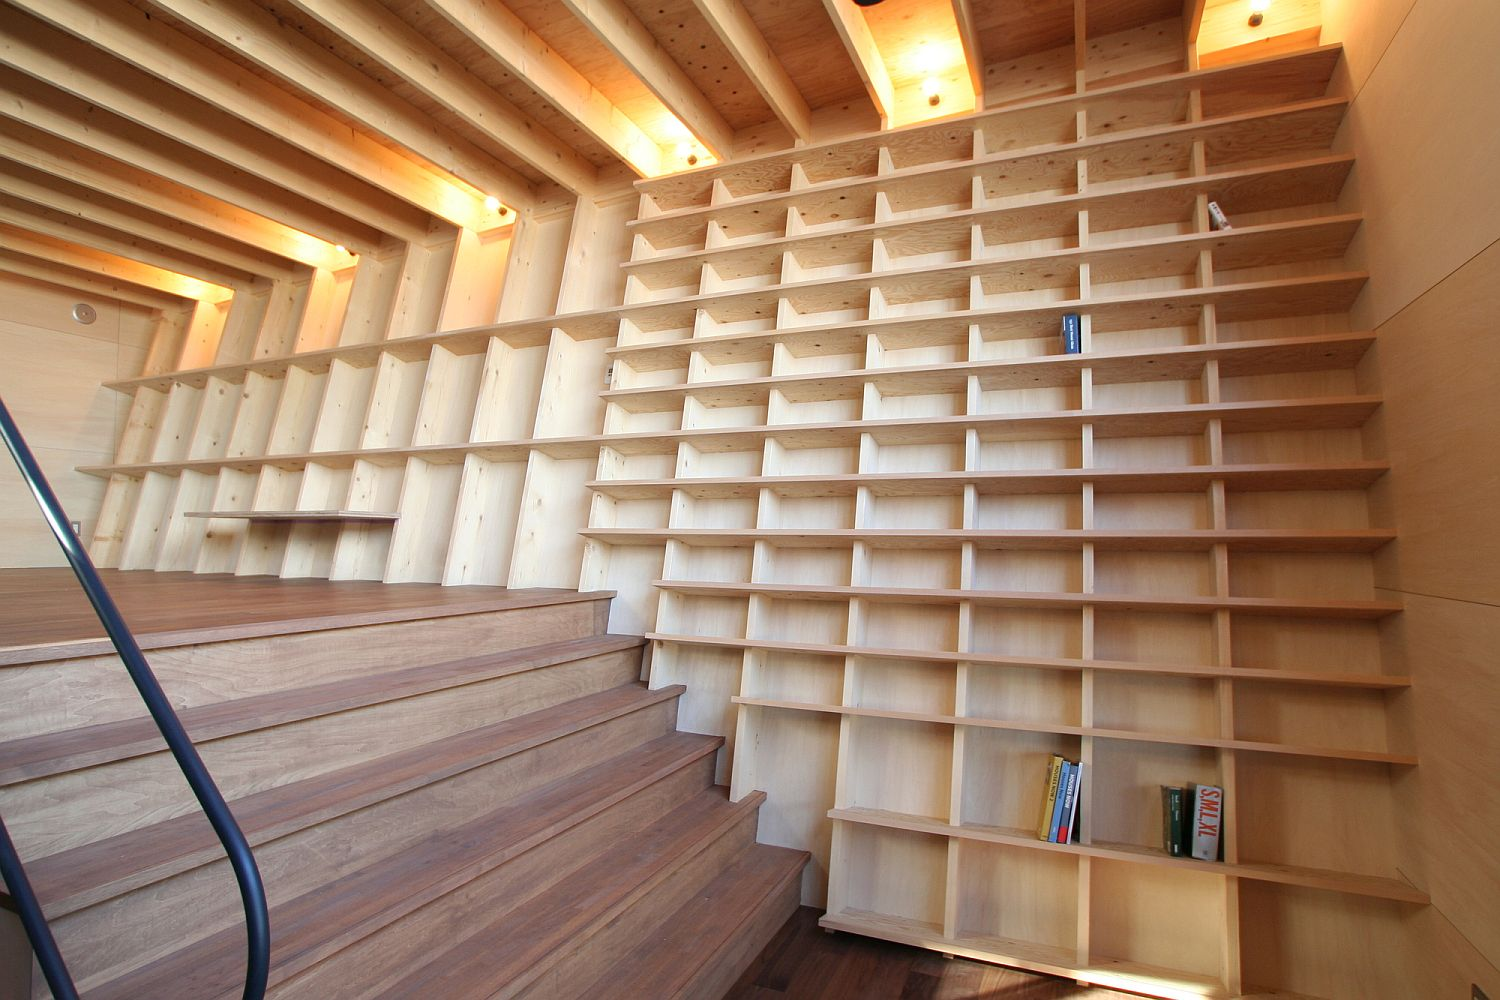 Giant bookshelf wall goes beyond the mundane